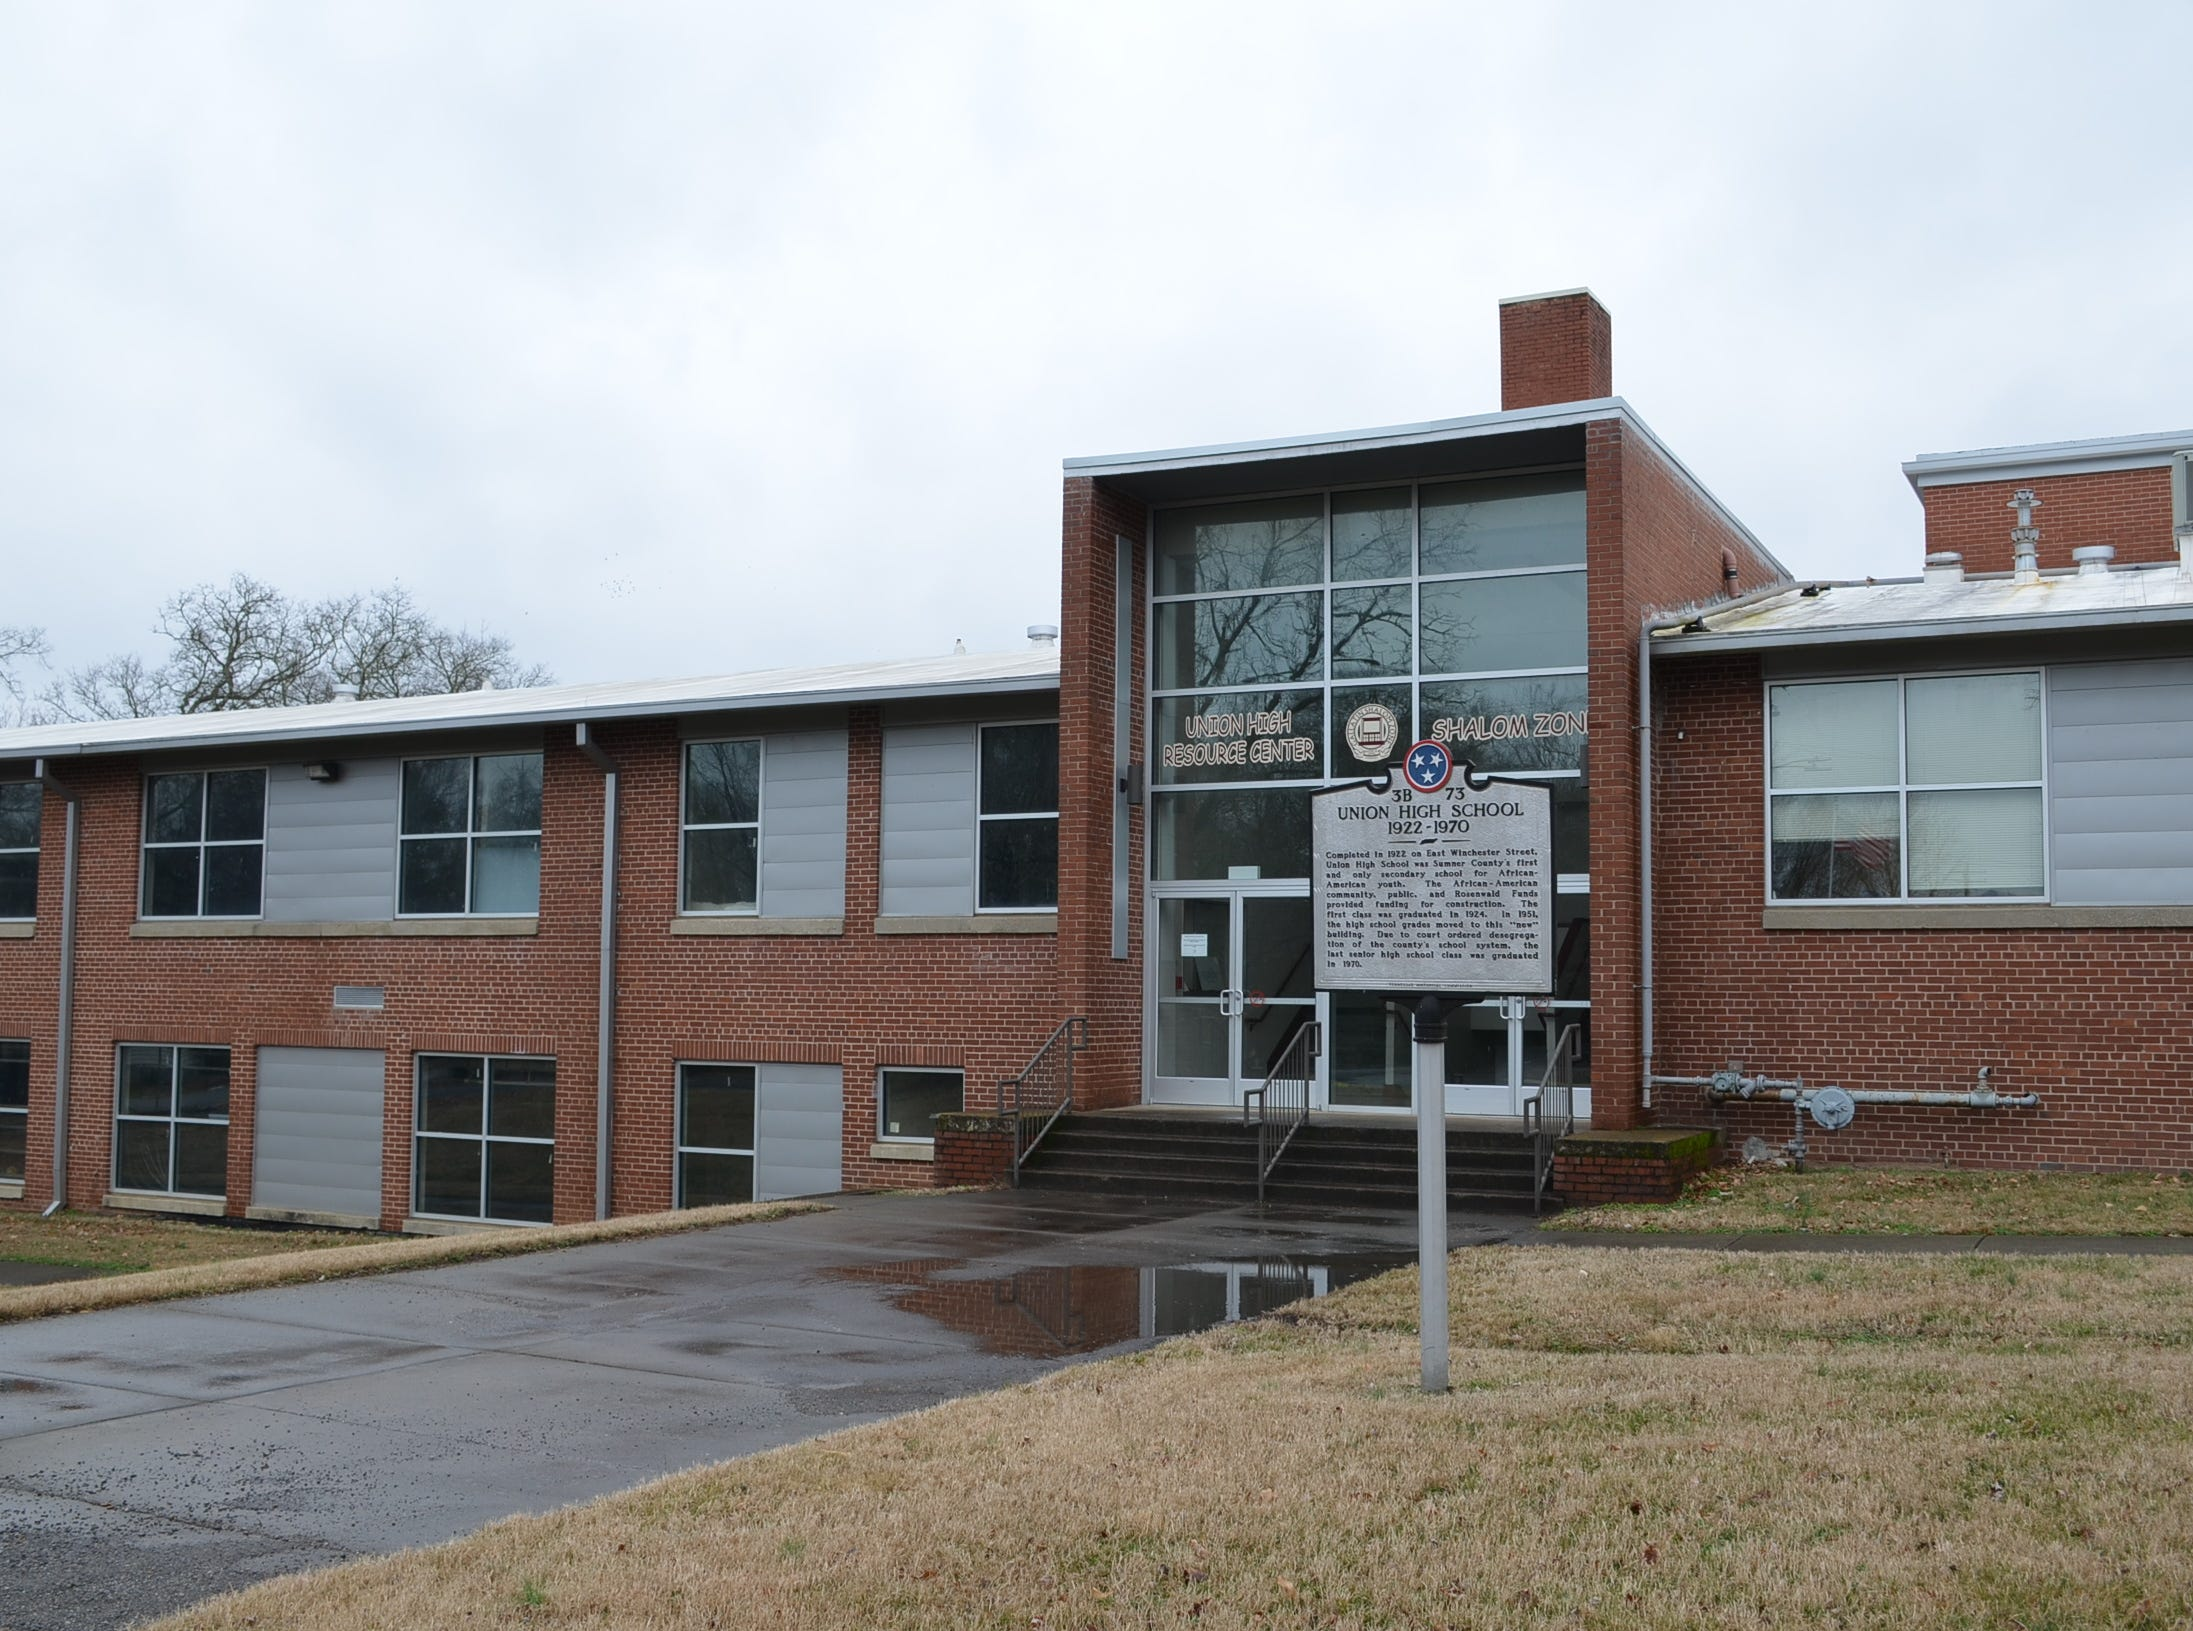 The space that was once Union High School is now home to Gallatin Shalom Zone, Mid-Cumberland Community Action Agency and other organizations.